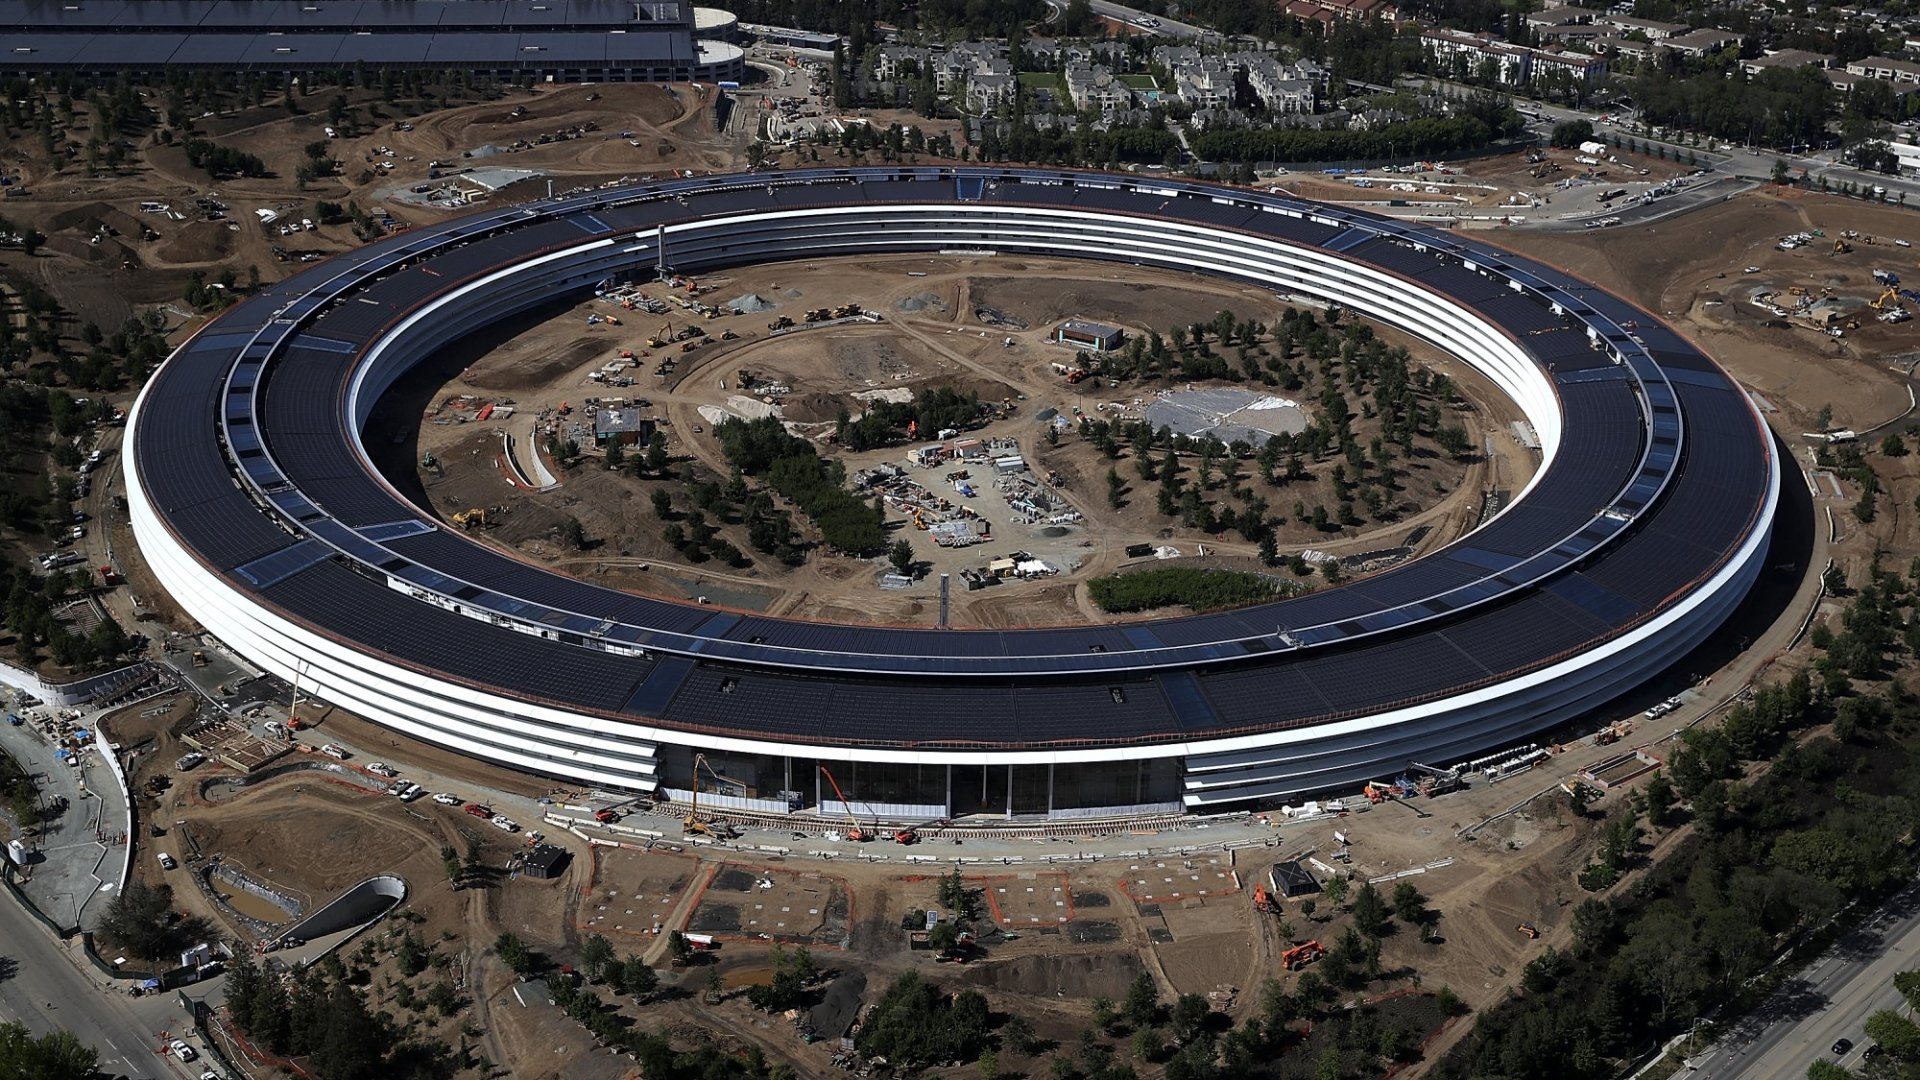 Apple's Stunning New HQ Is as Polarizing as Its Visionary (Steve Jobs)